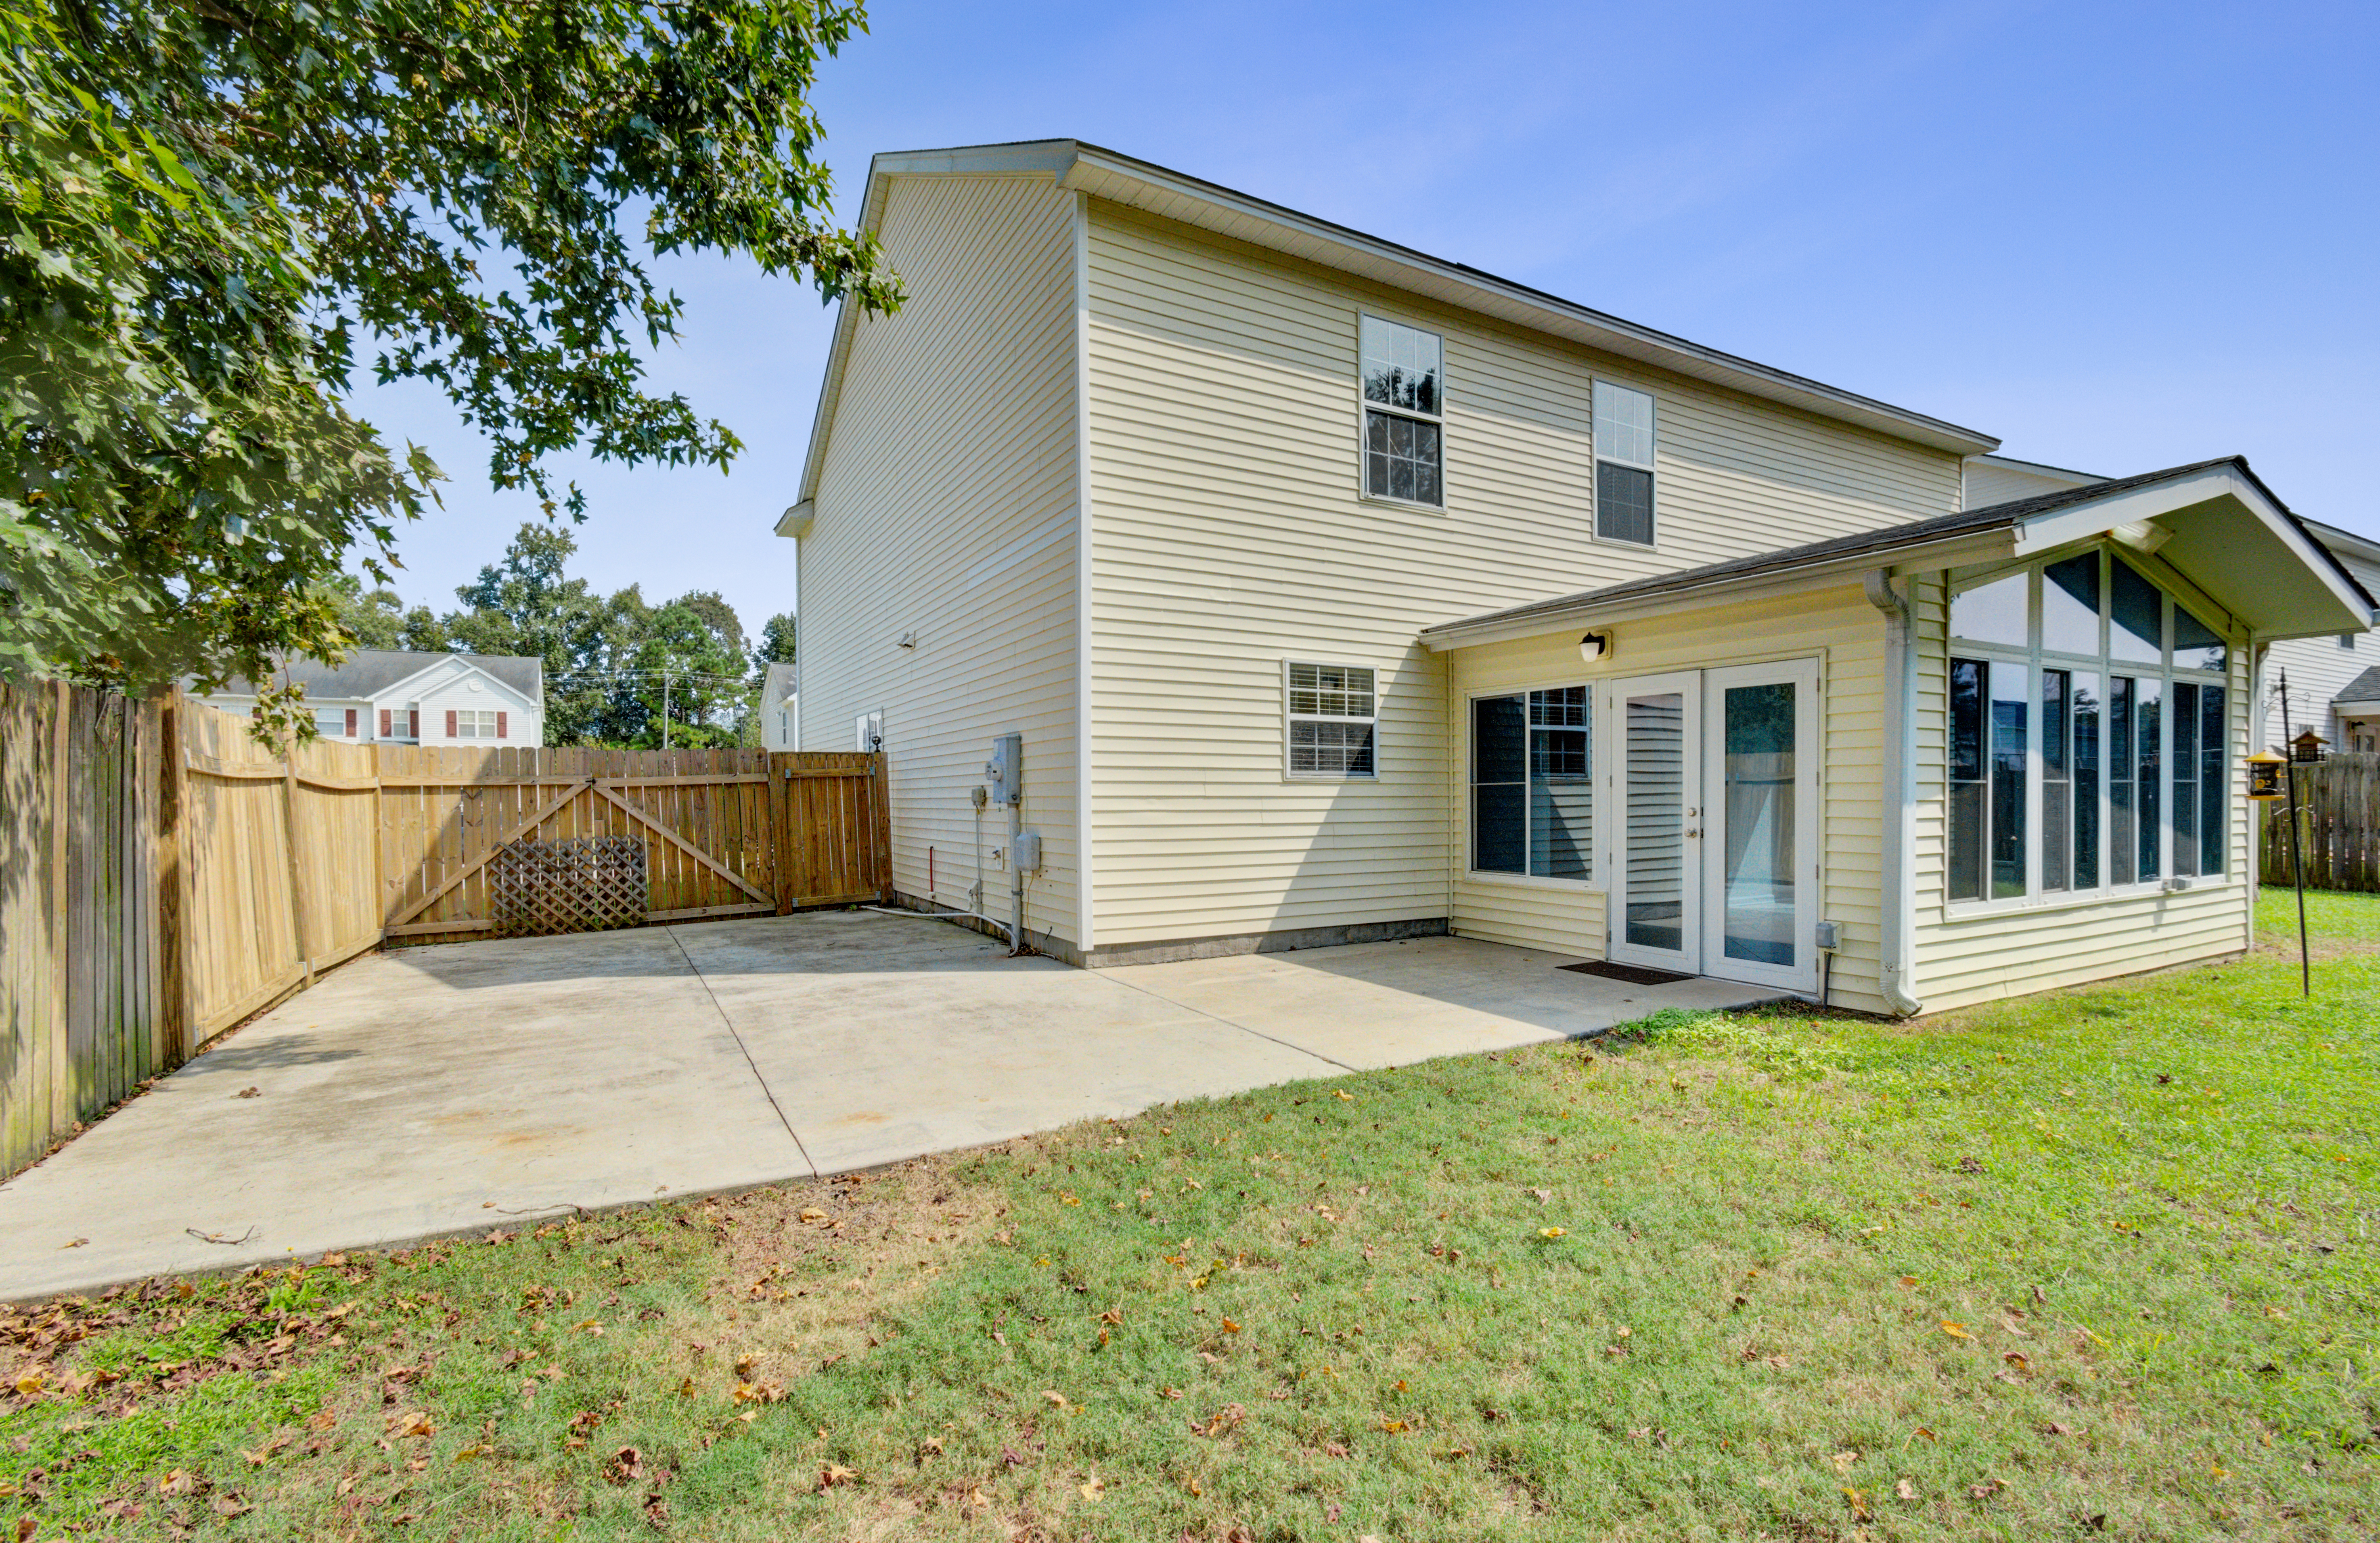 260 Tall Pines Rd Ladson SC 29456-3198 - Photo 25